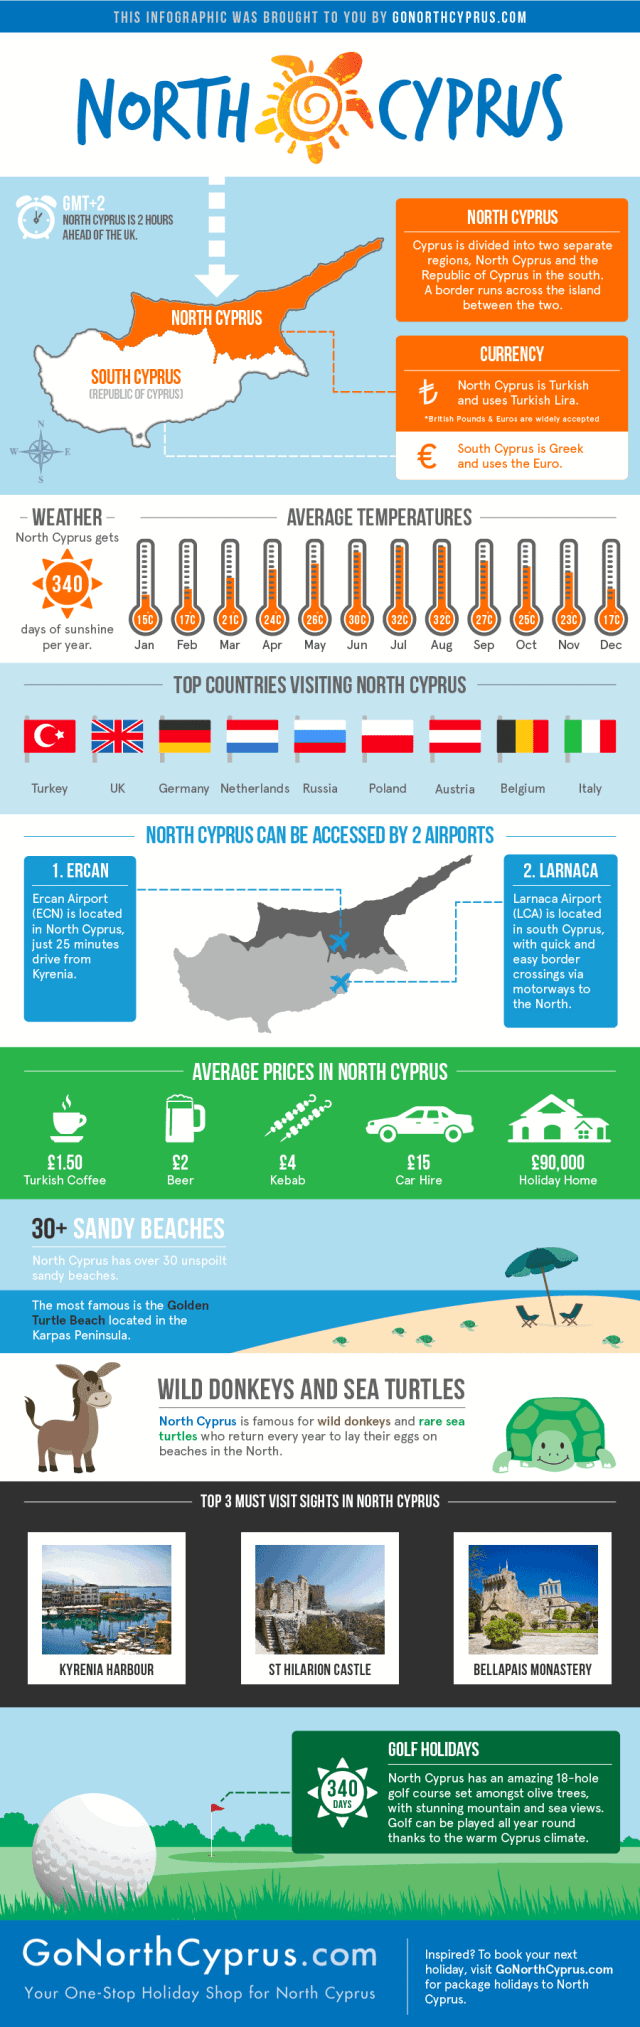 north-cyprus-infographic-640x2027